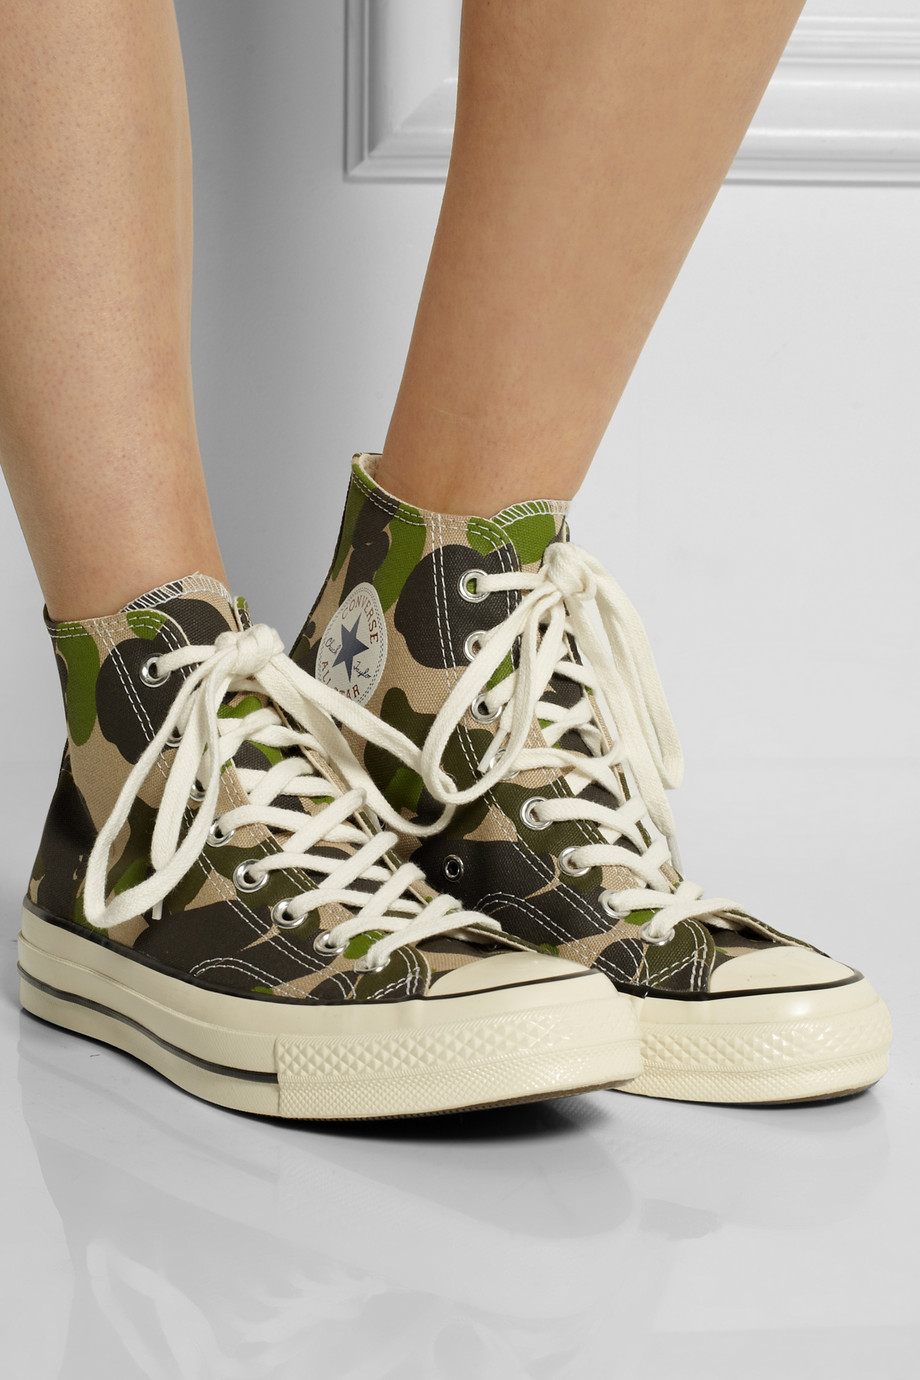 8c38be5a8f Converse Chuck Taylor All Star '70 Printed Canvas High-Top Sneakers in  Green - Lyst